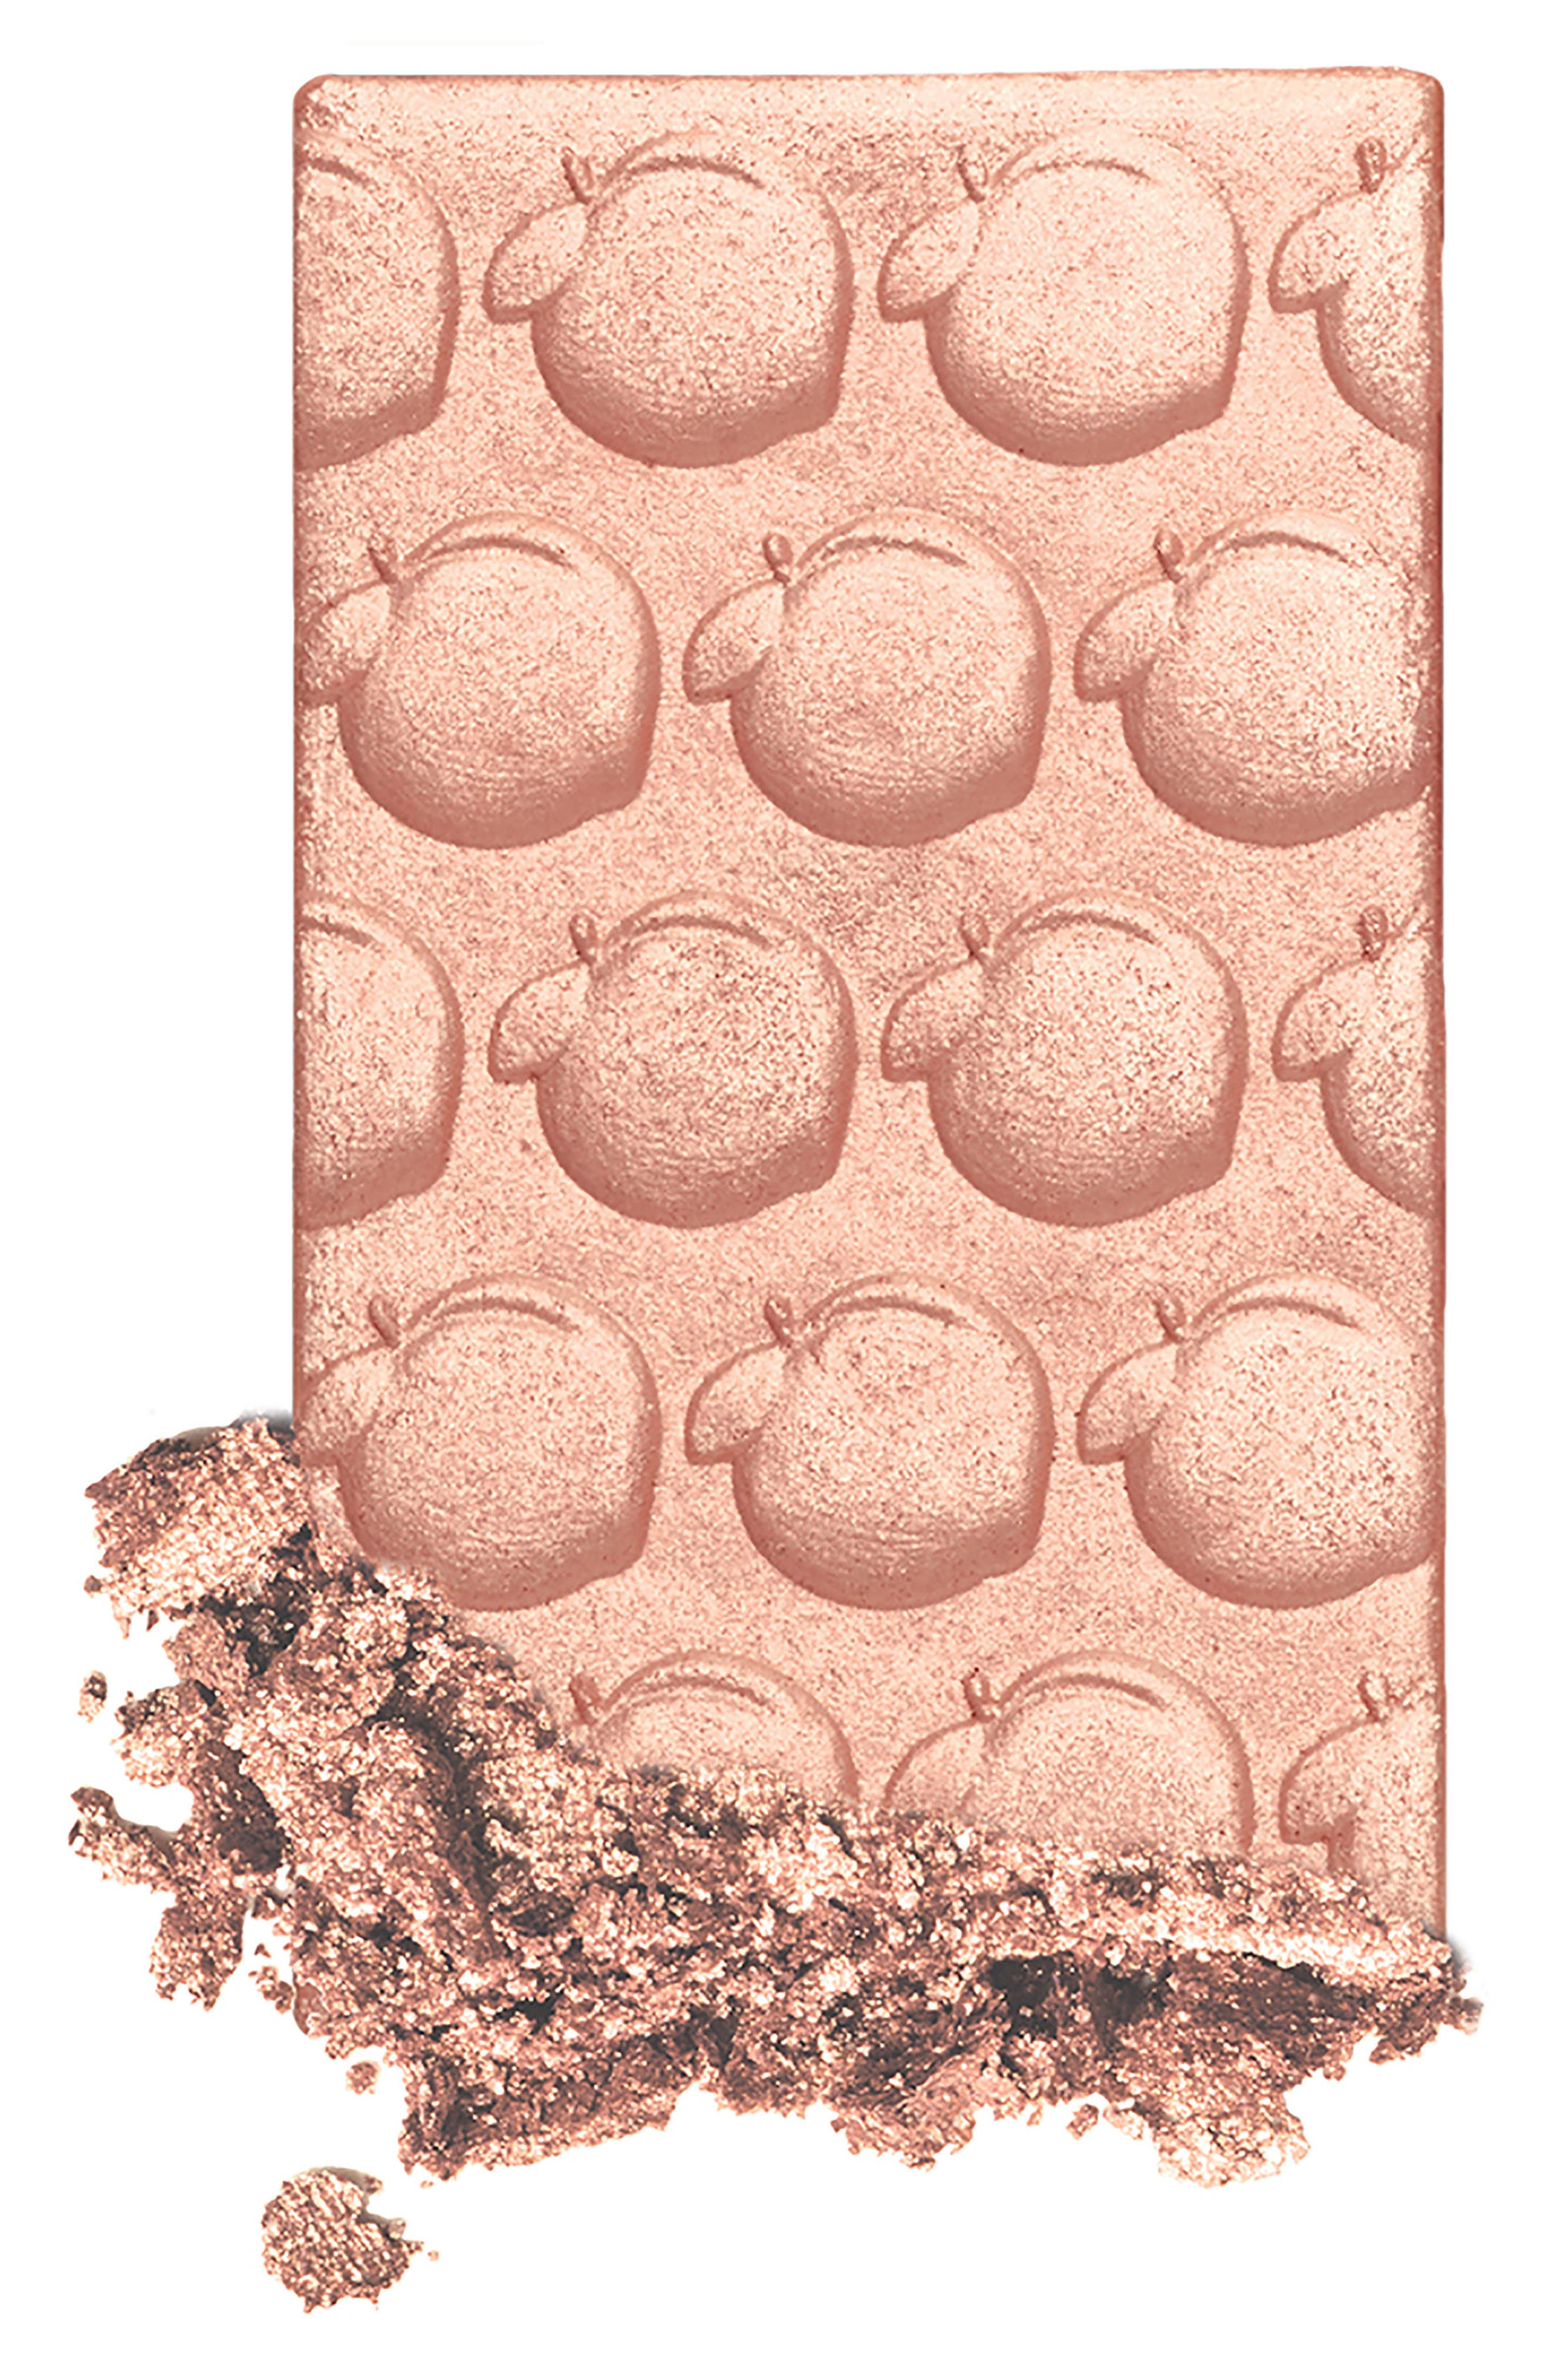 Sweet Peach Glow Highlighting Palette,                             Alternate thumbnail 5, color,                             No Color